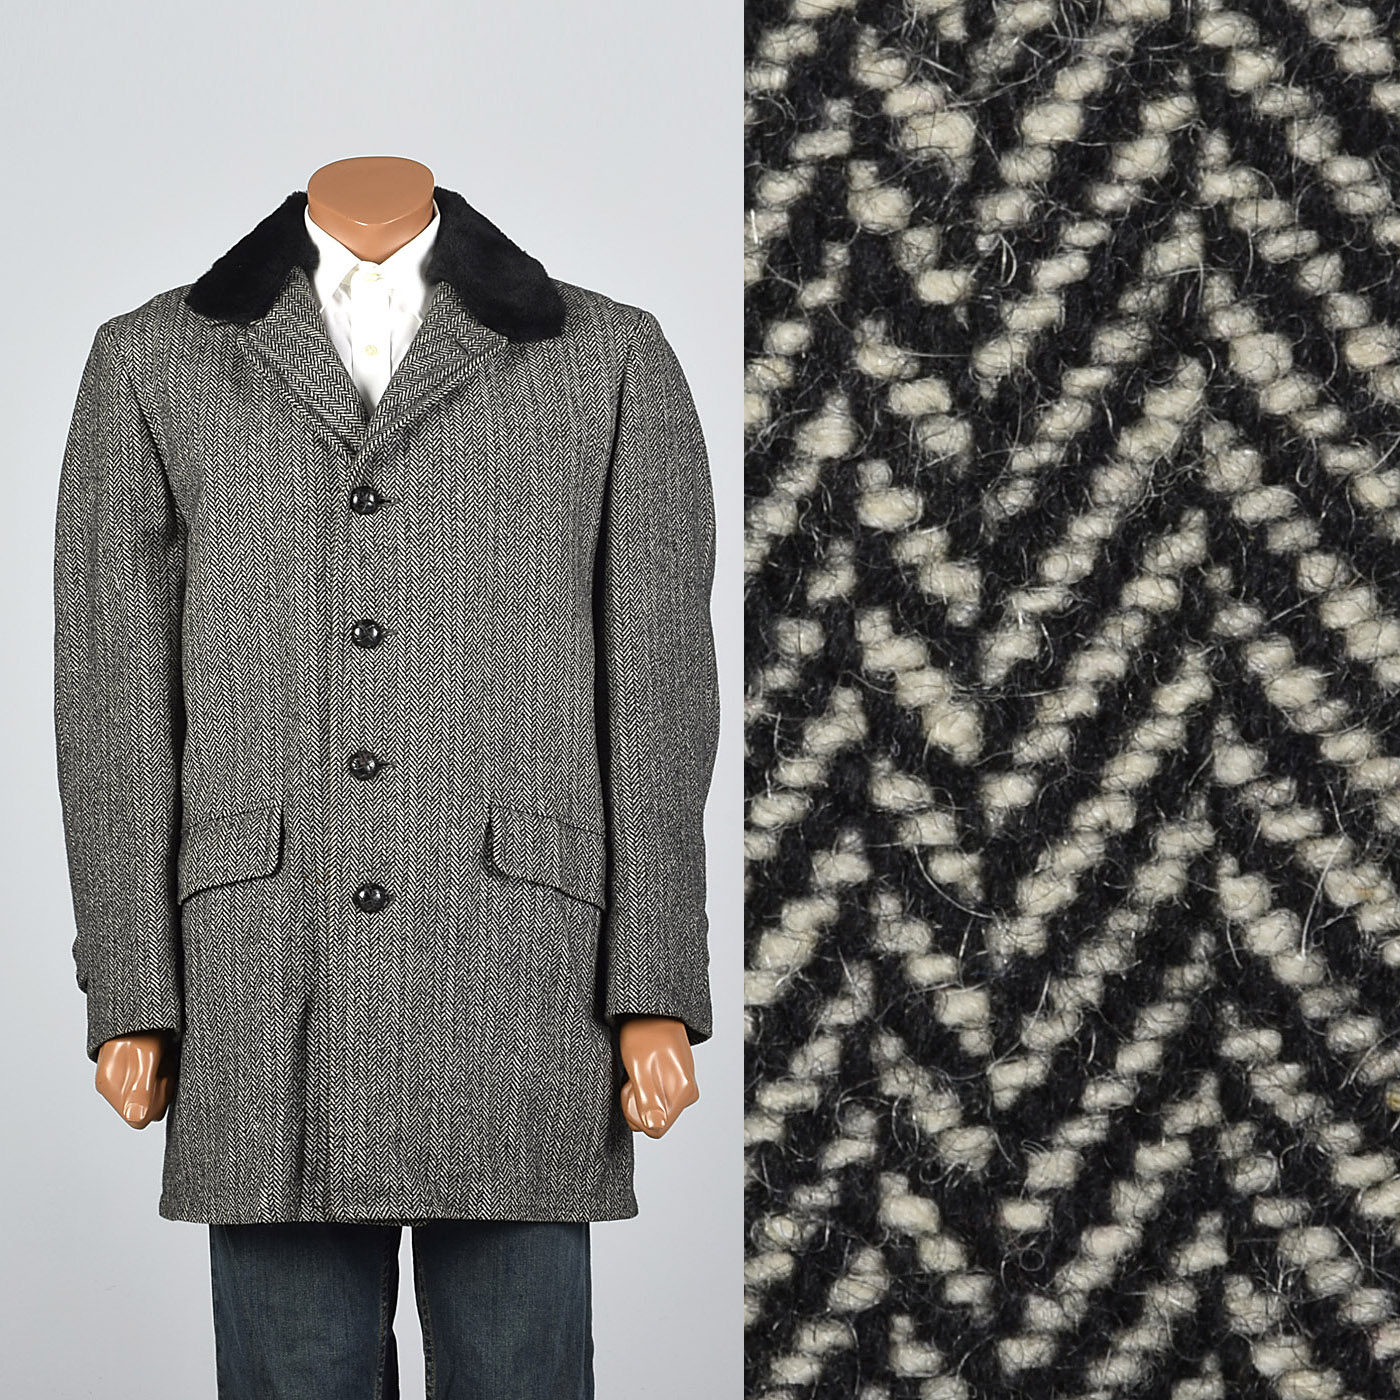 Black and White Herringbone Coat